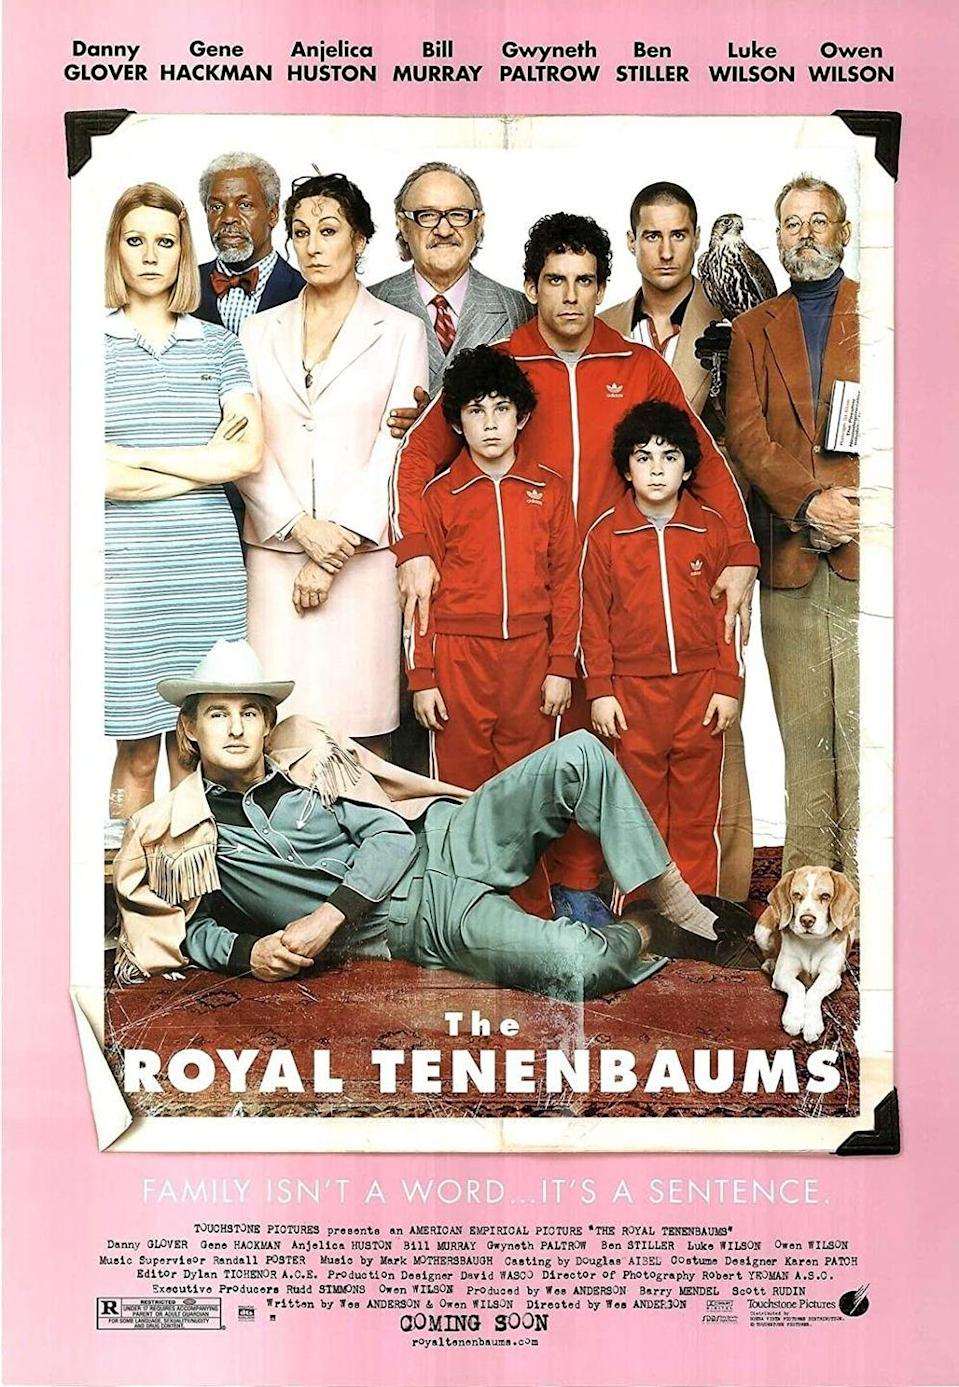 <p>One of Wes Anderson's most celebrated works, The Royal Tenenbaums was released on December 14, 2001. The story follows a family patriarch (Gene Hackman) as he attempts to reunite his estranged family and tries to make amends. With an all-star cast including Bill Murray, the Wilson brothers, and Gwyneth Paltrow, it's definitely an original storyline and still a must-see. </p>